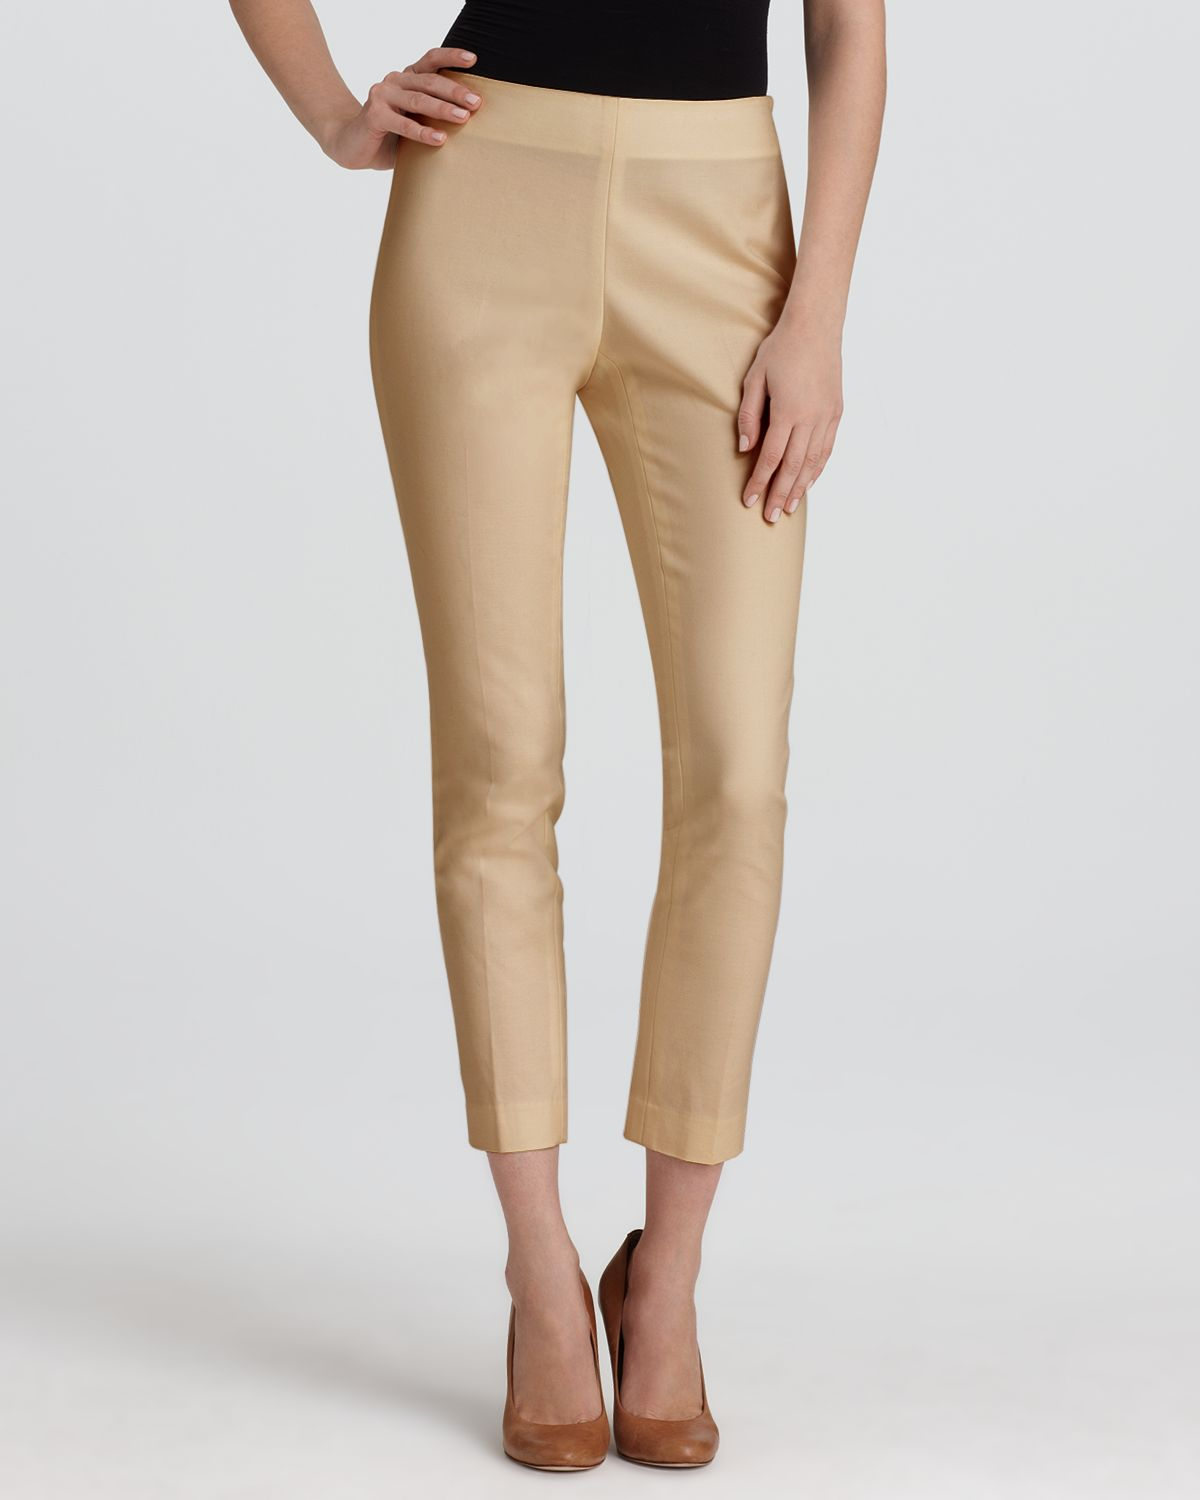 Vince Camuto Side Zip Pants In Natural Lyst